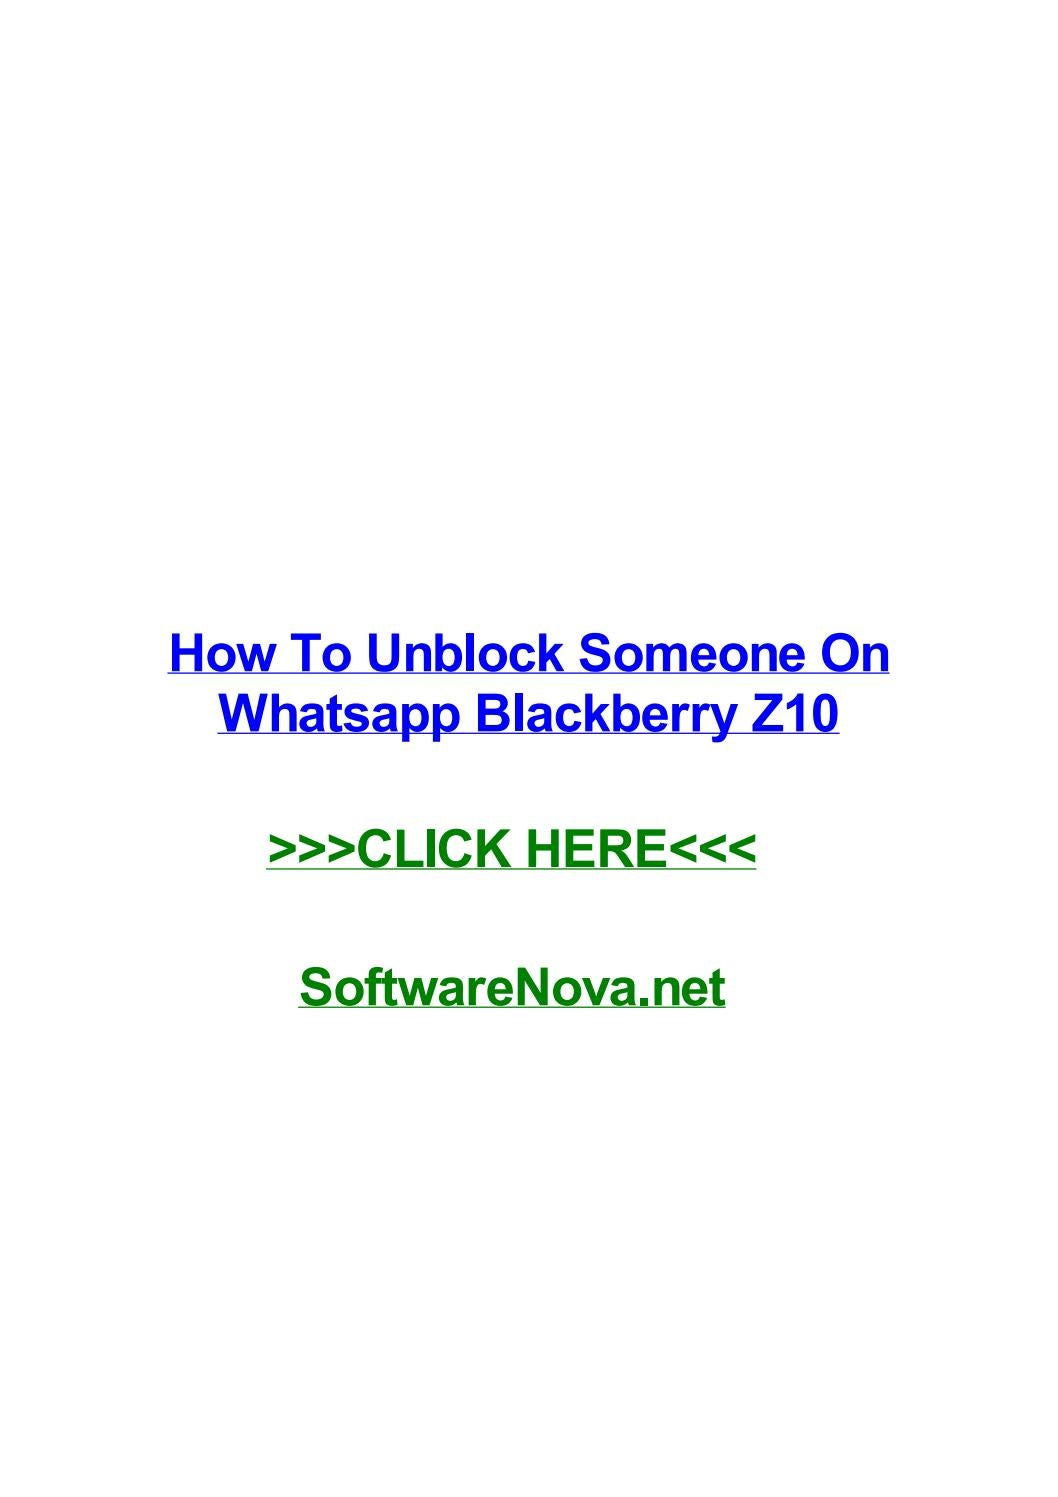 How to unblock someone on whatsapp blackberry z10 by